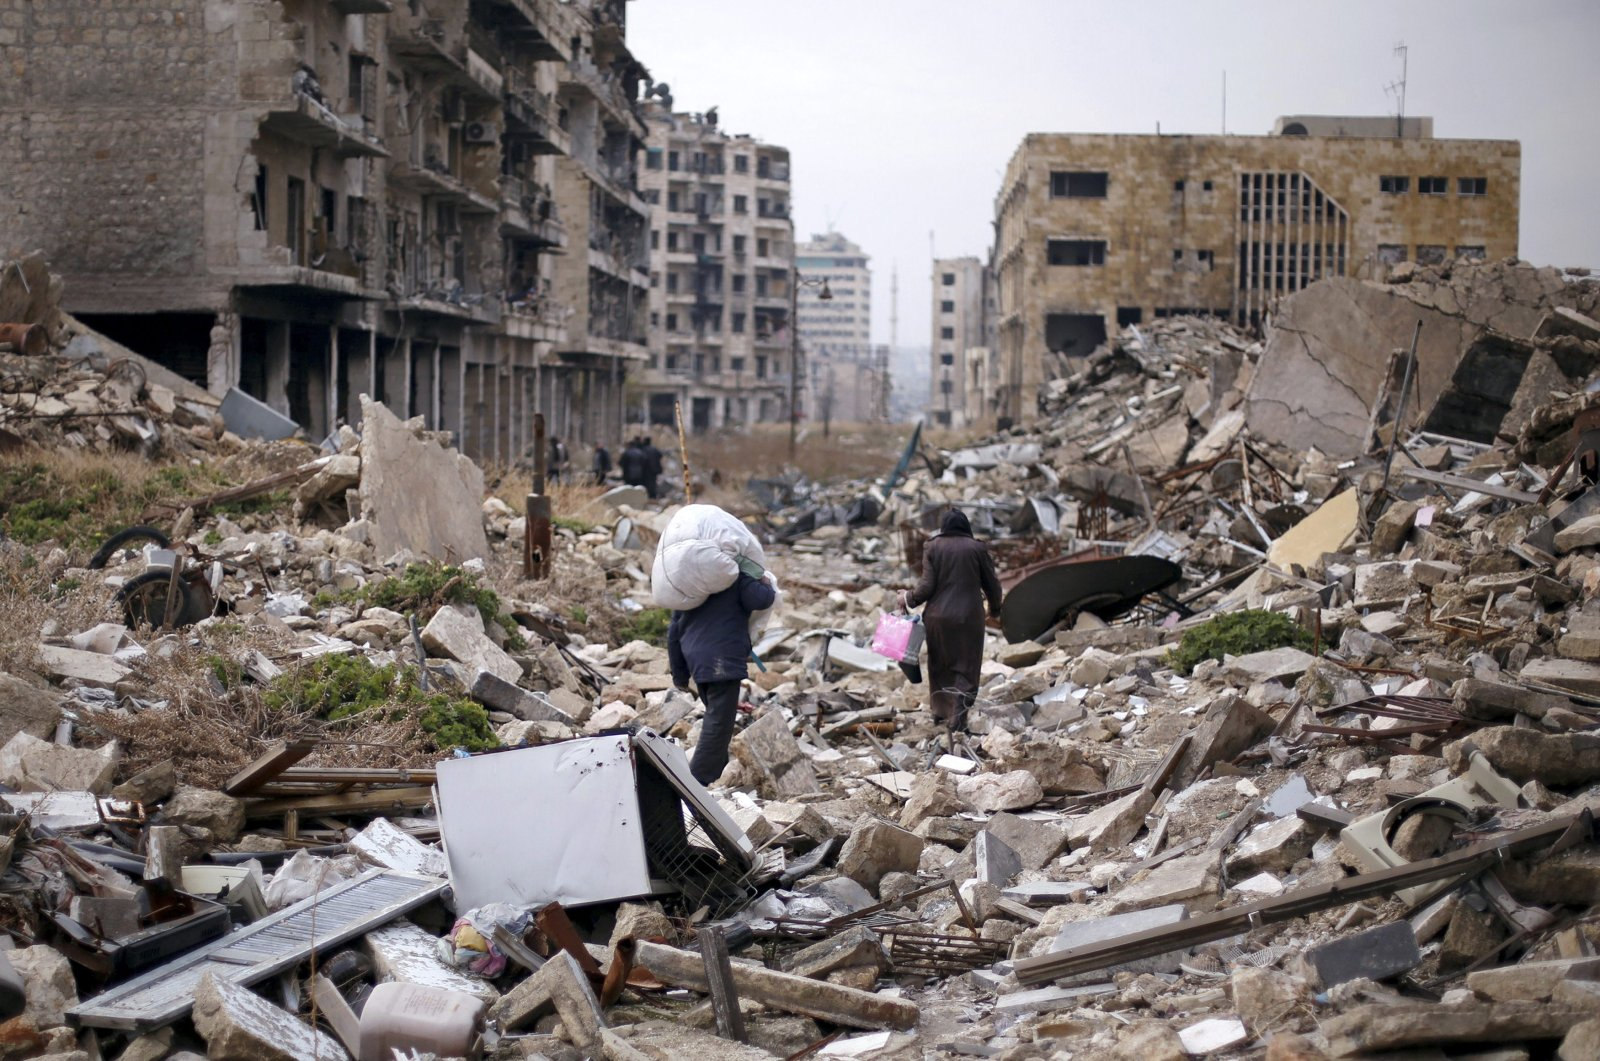 People walk amid the rubble as they carry belongings that they collected from their houses in the Assad regime controlled area of Aleppo, Syria, December 17, 2016. (REUTERS Photo)